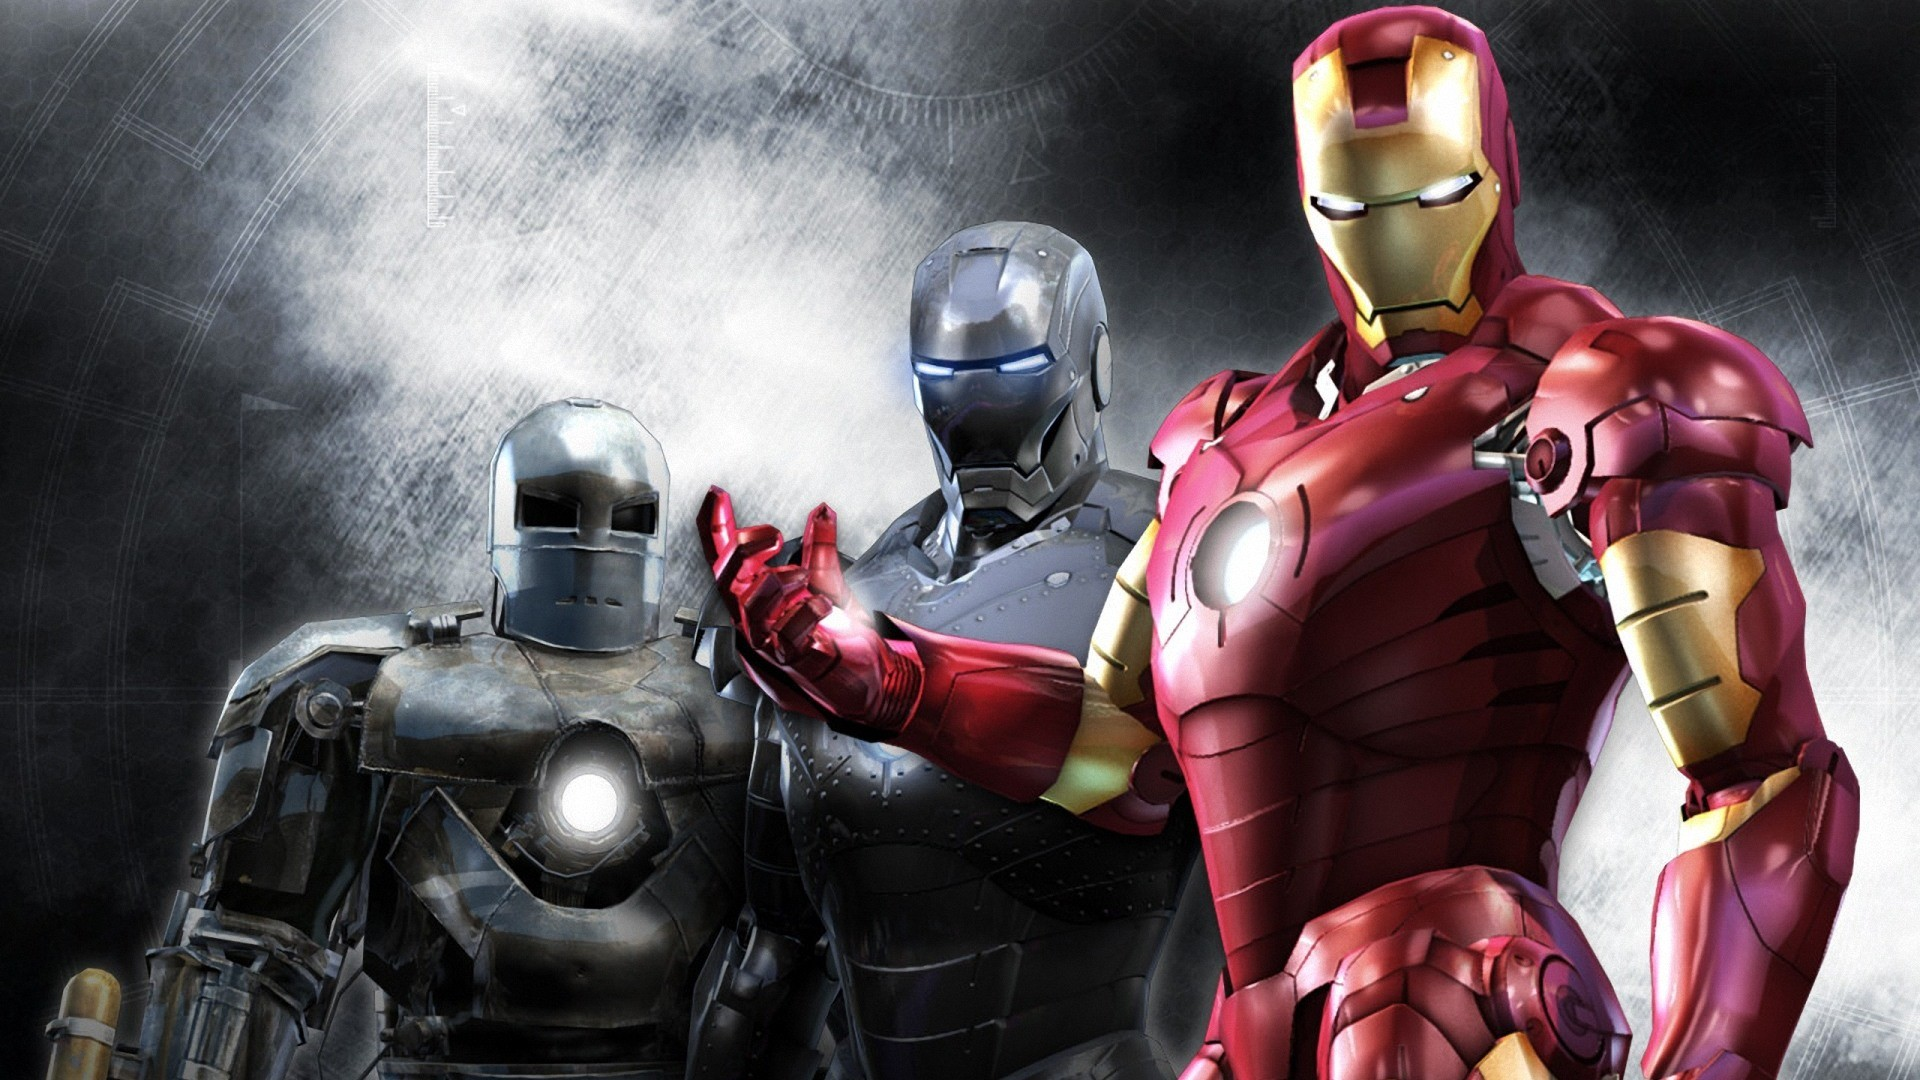 Iron man wallpaper suits